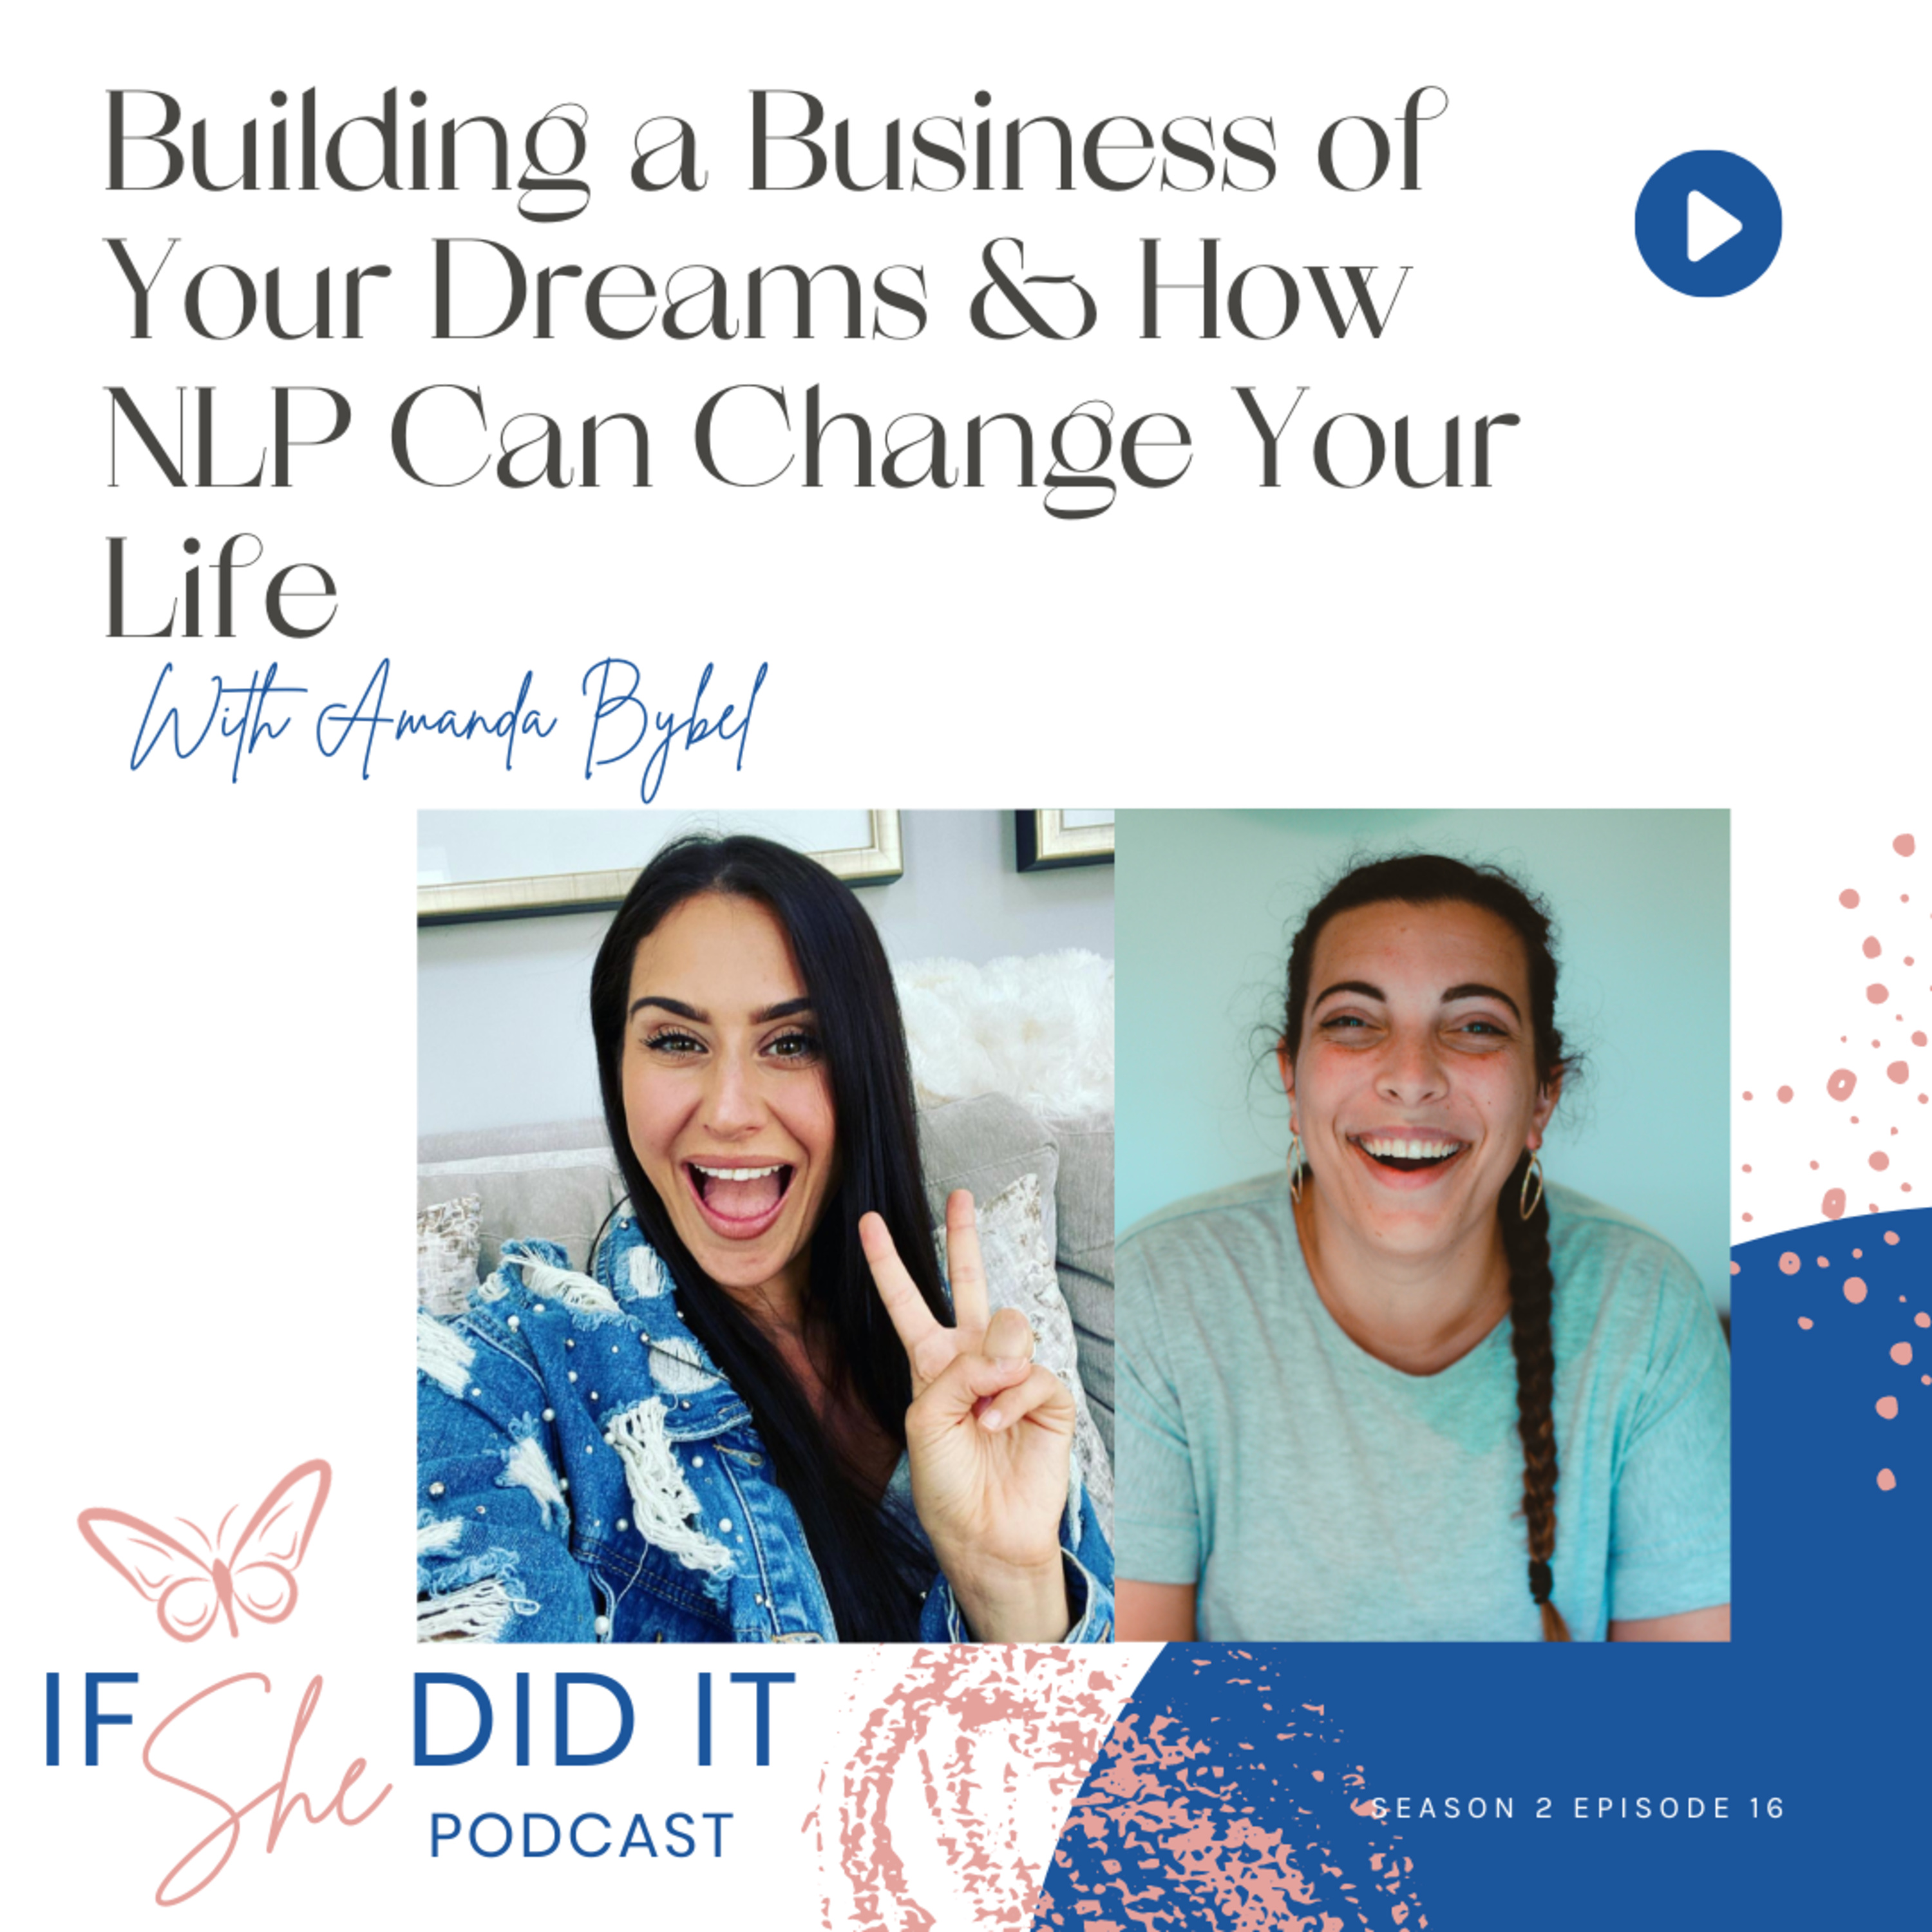 Building a Business of Your Dreams & How NLP Can Change Your Life